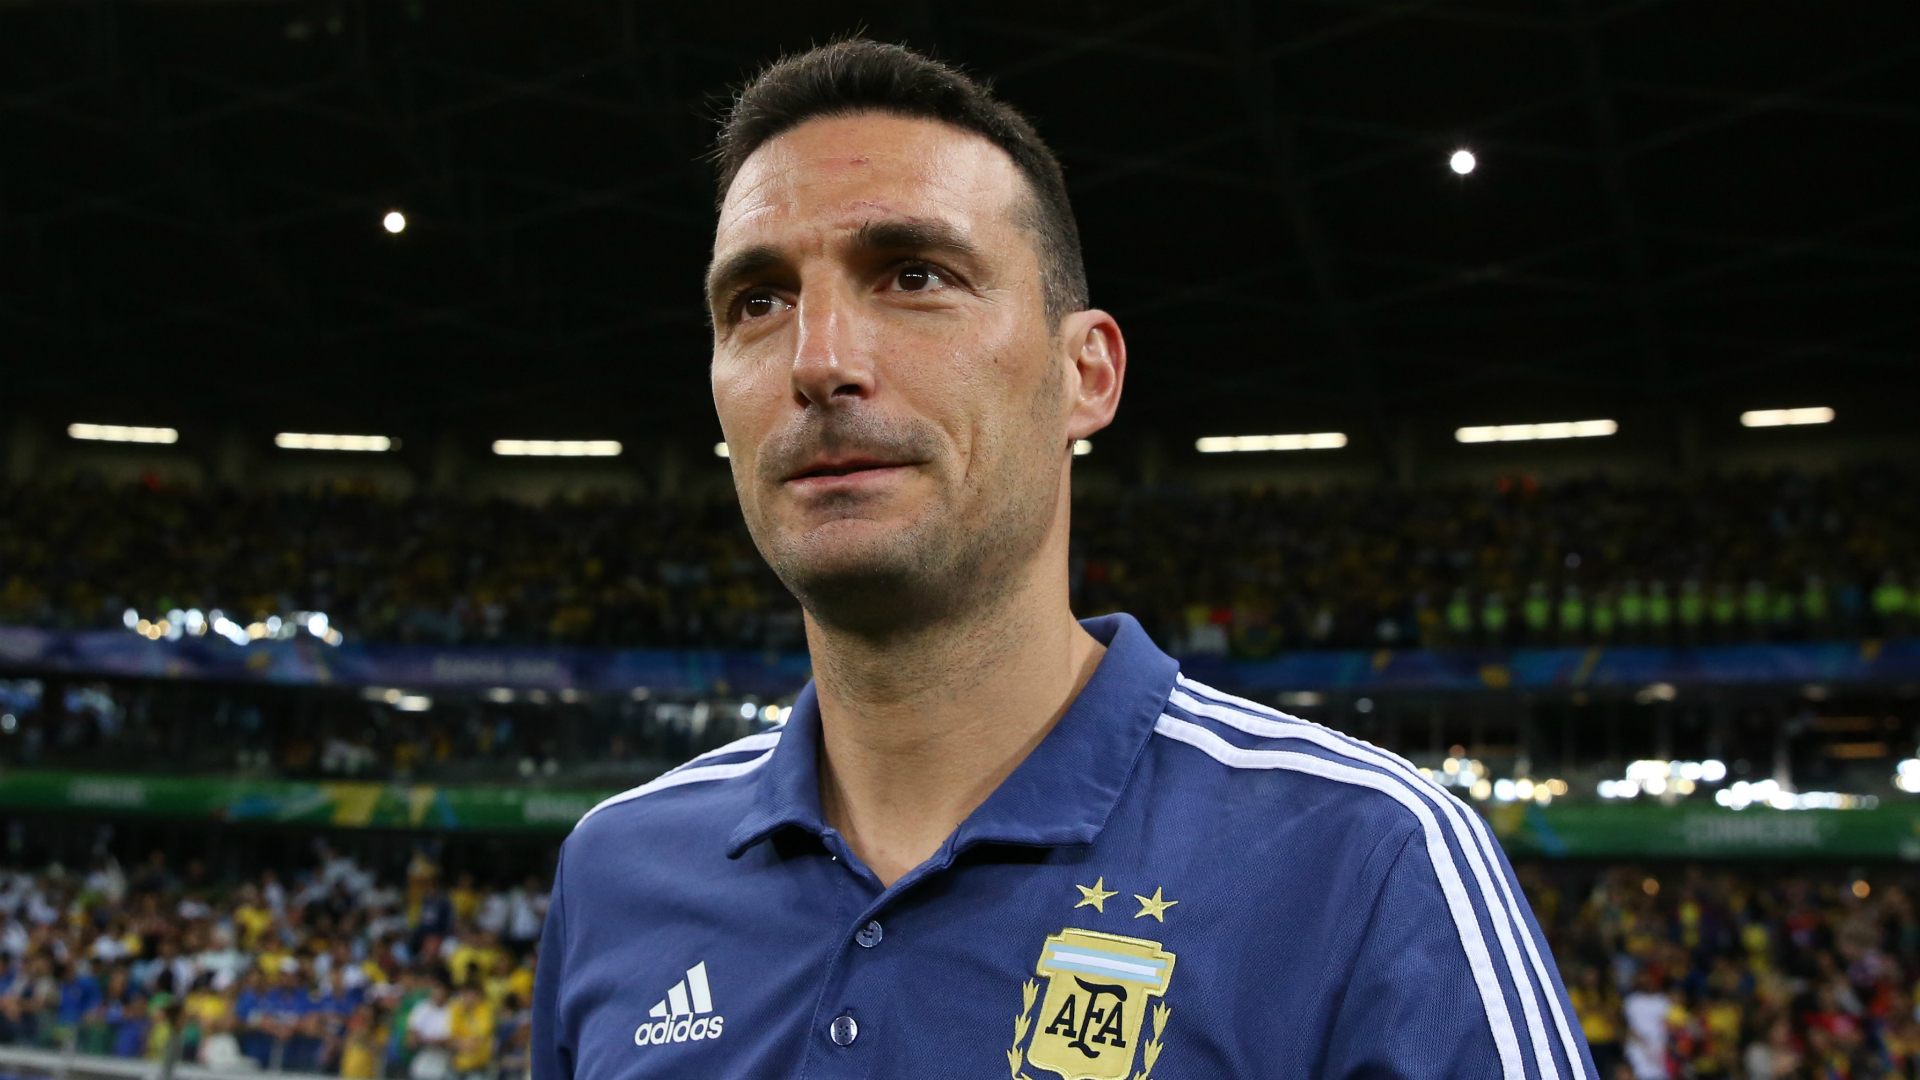 Argentina to stick with Scaloni for 2022 World Cup qualifiers